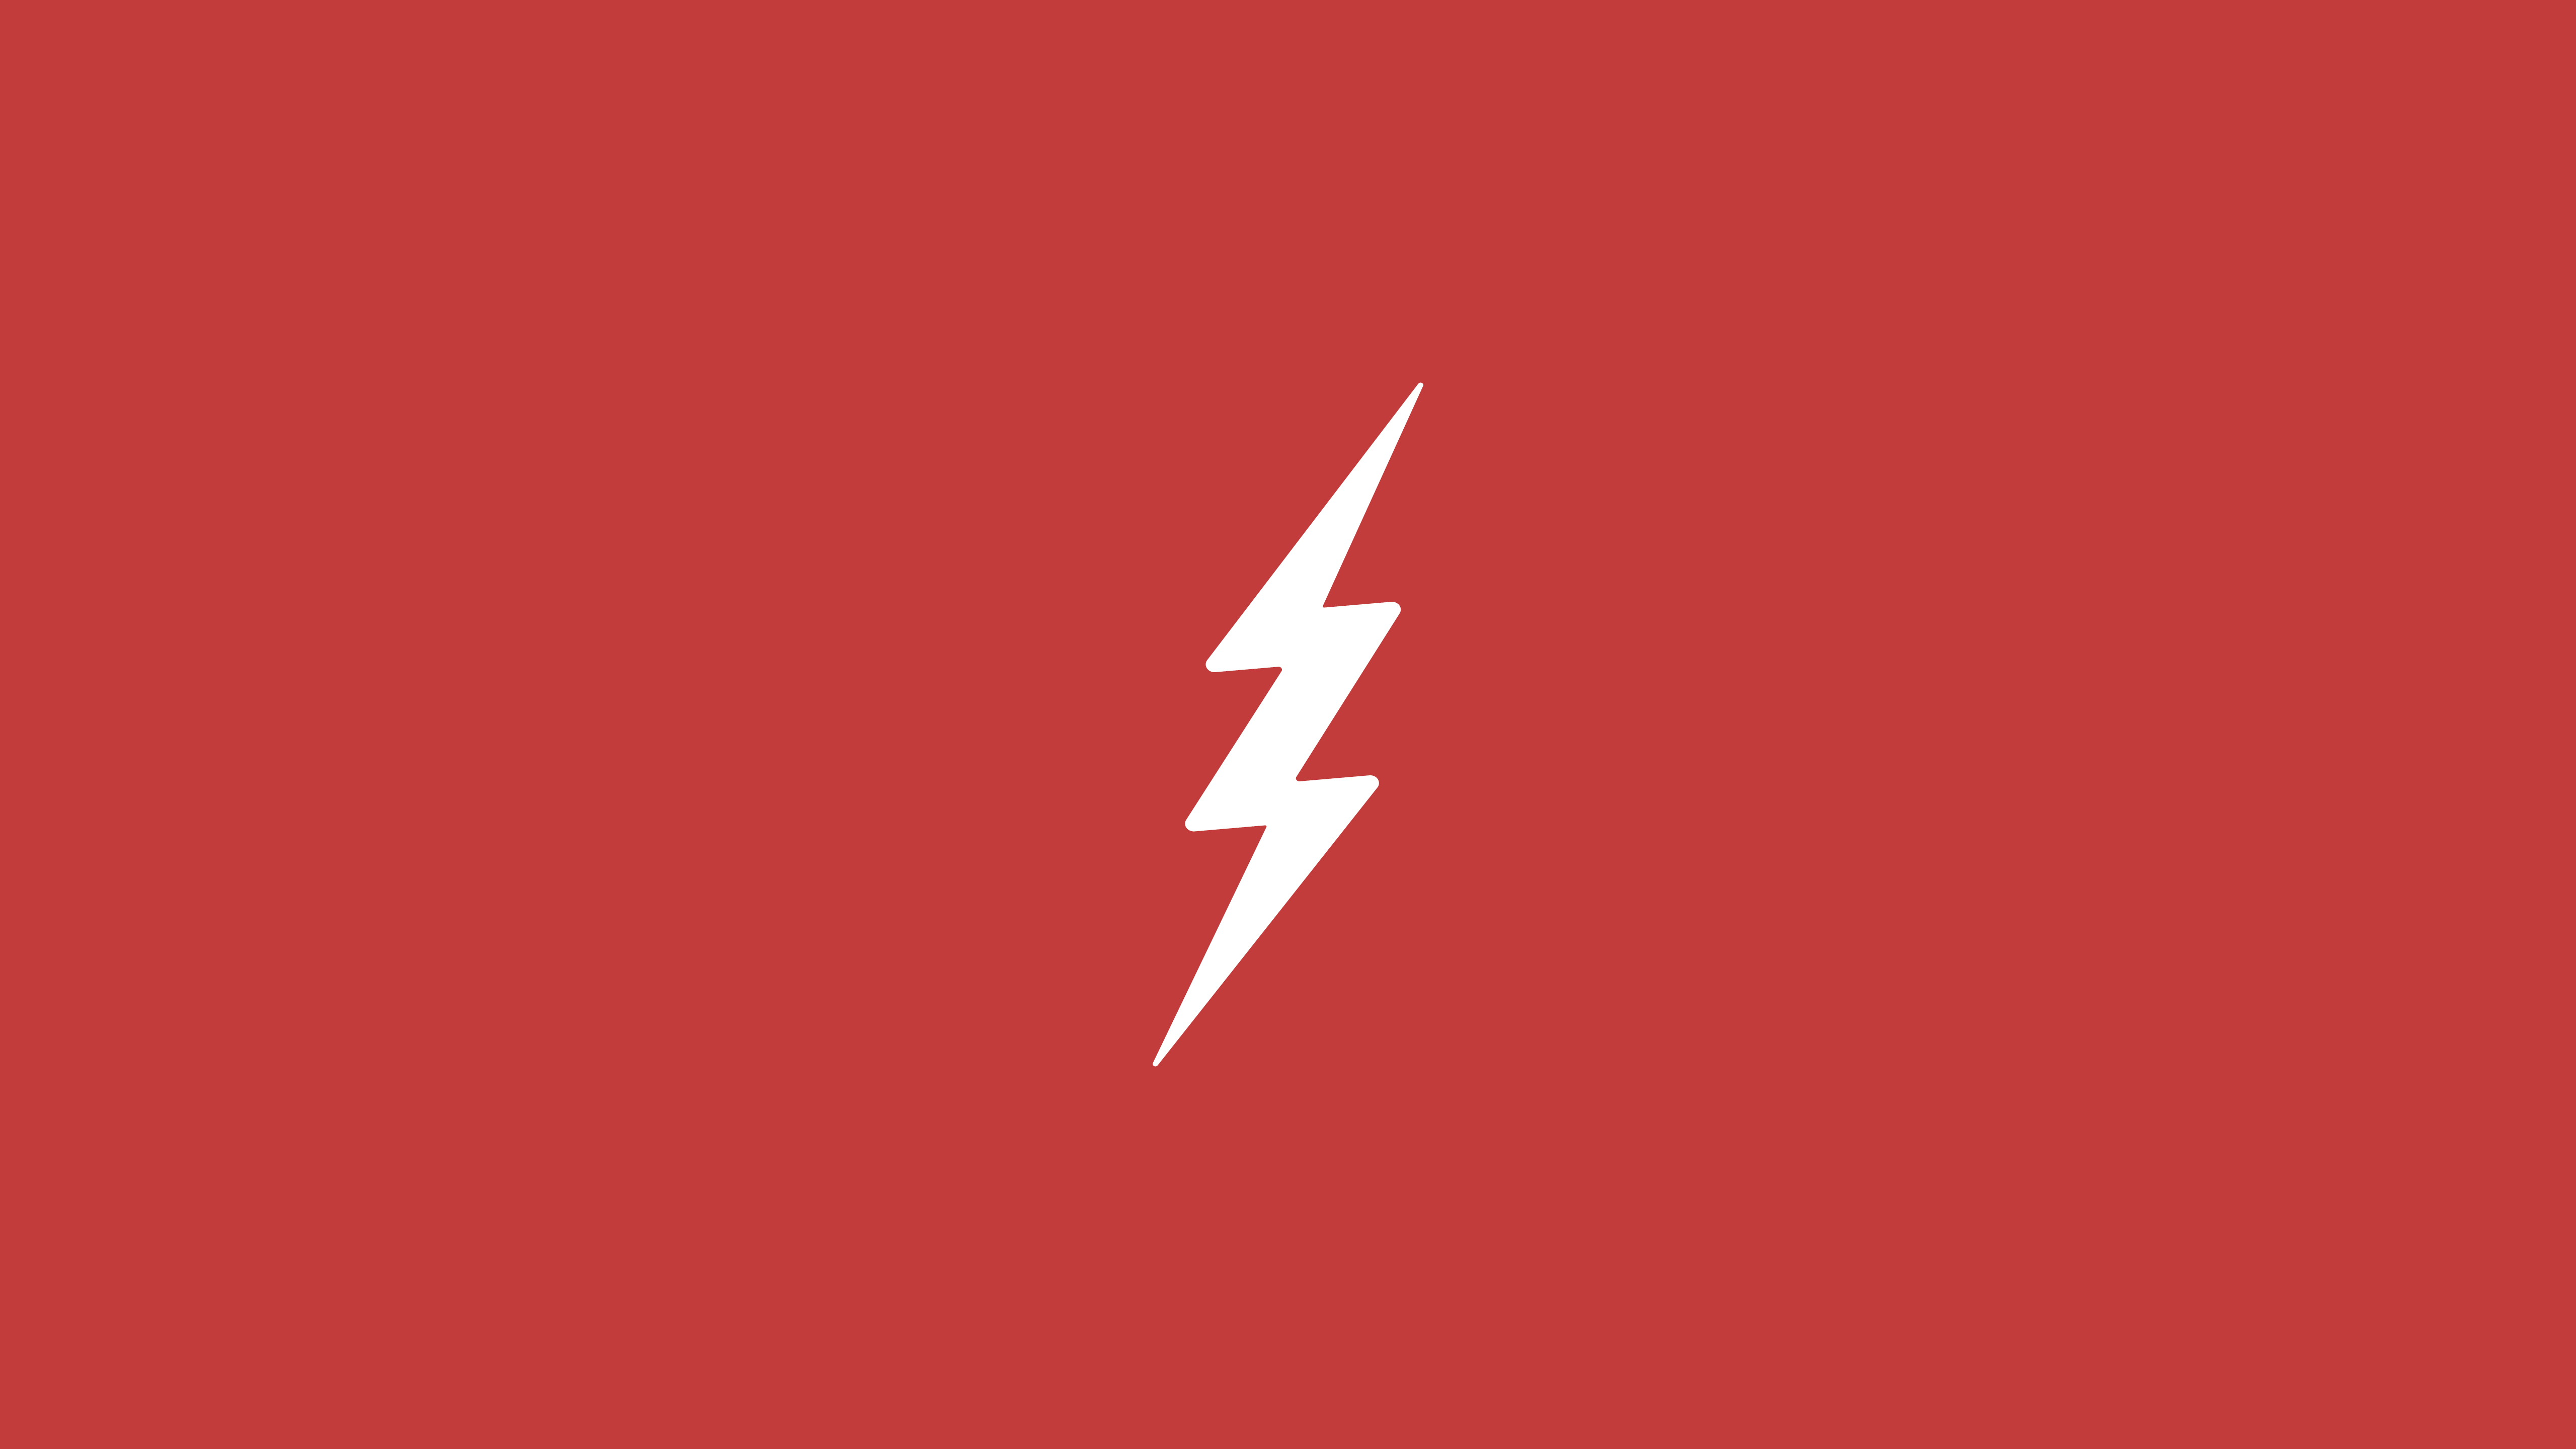 flash logo minimalism hd artist 4k wallpapers images